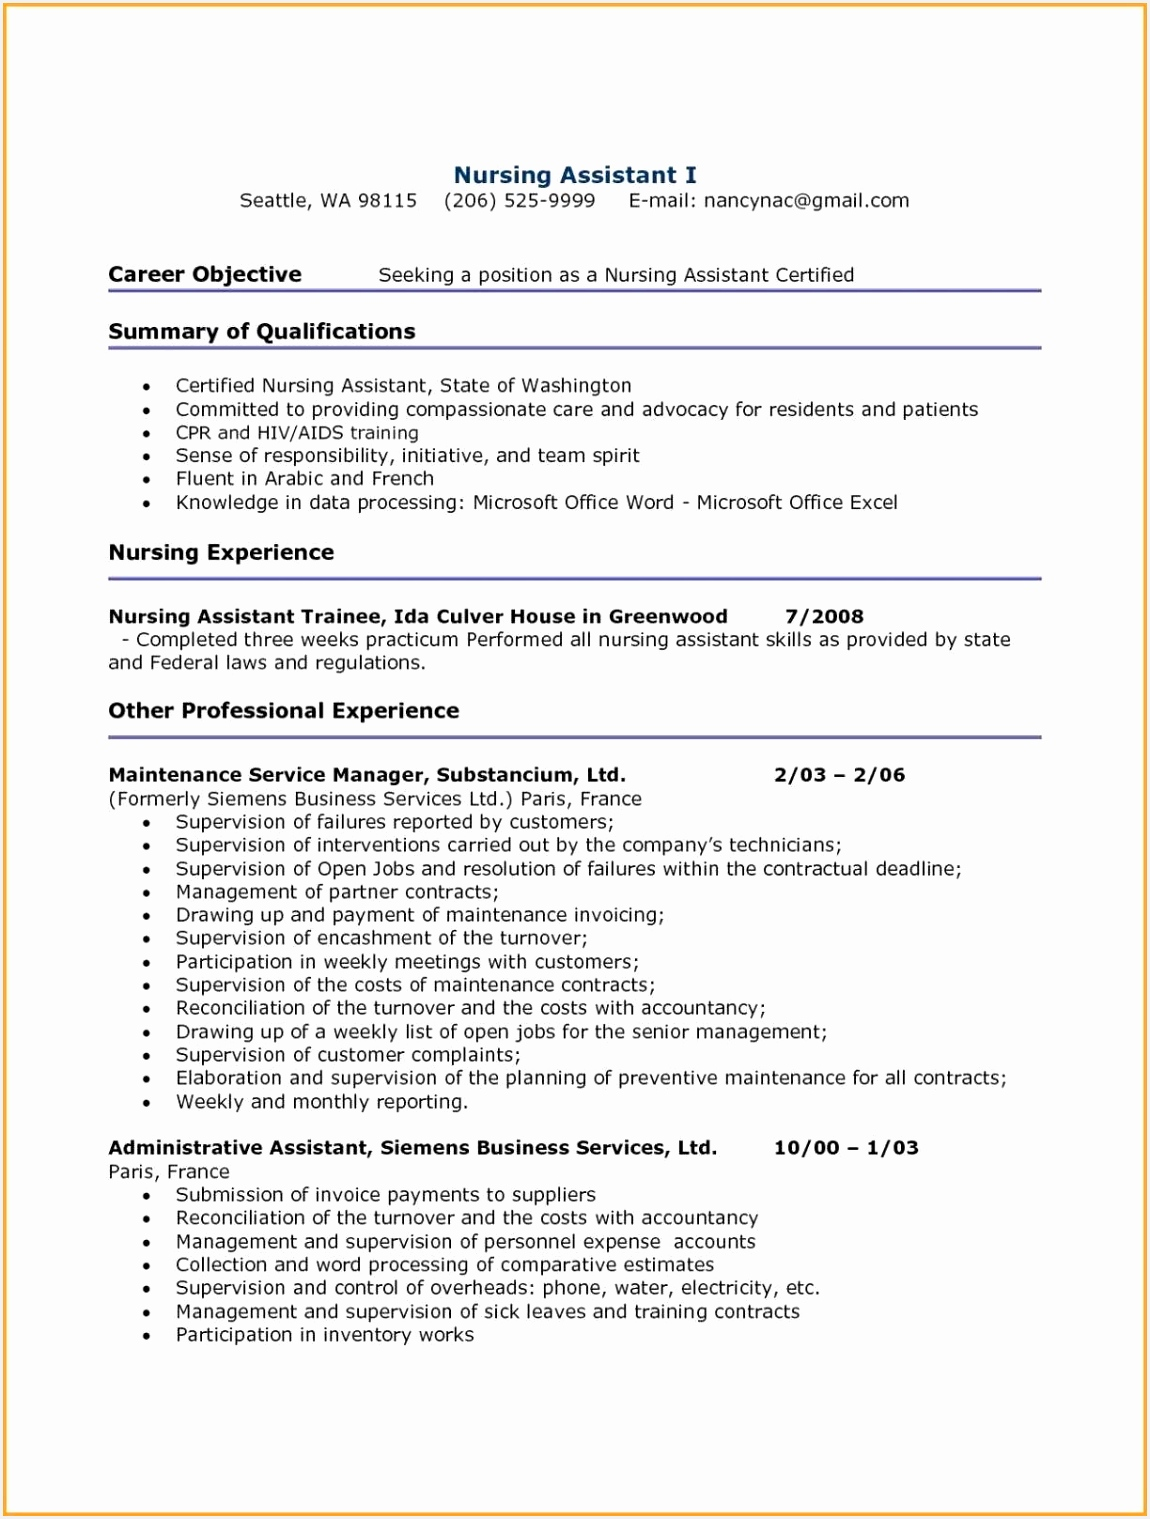 Microsoft Trainer Sample Resume Rduqf Awesome Cover Letter Email format Lovely Email Cover Letters New Resume Of Microsoft Trainer Sample Resume Gbudu New Post It Sur Bureau Pc Luxueux New Professional Resume Samples Luxury